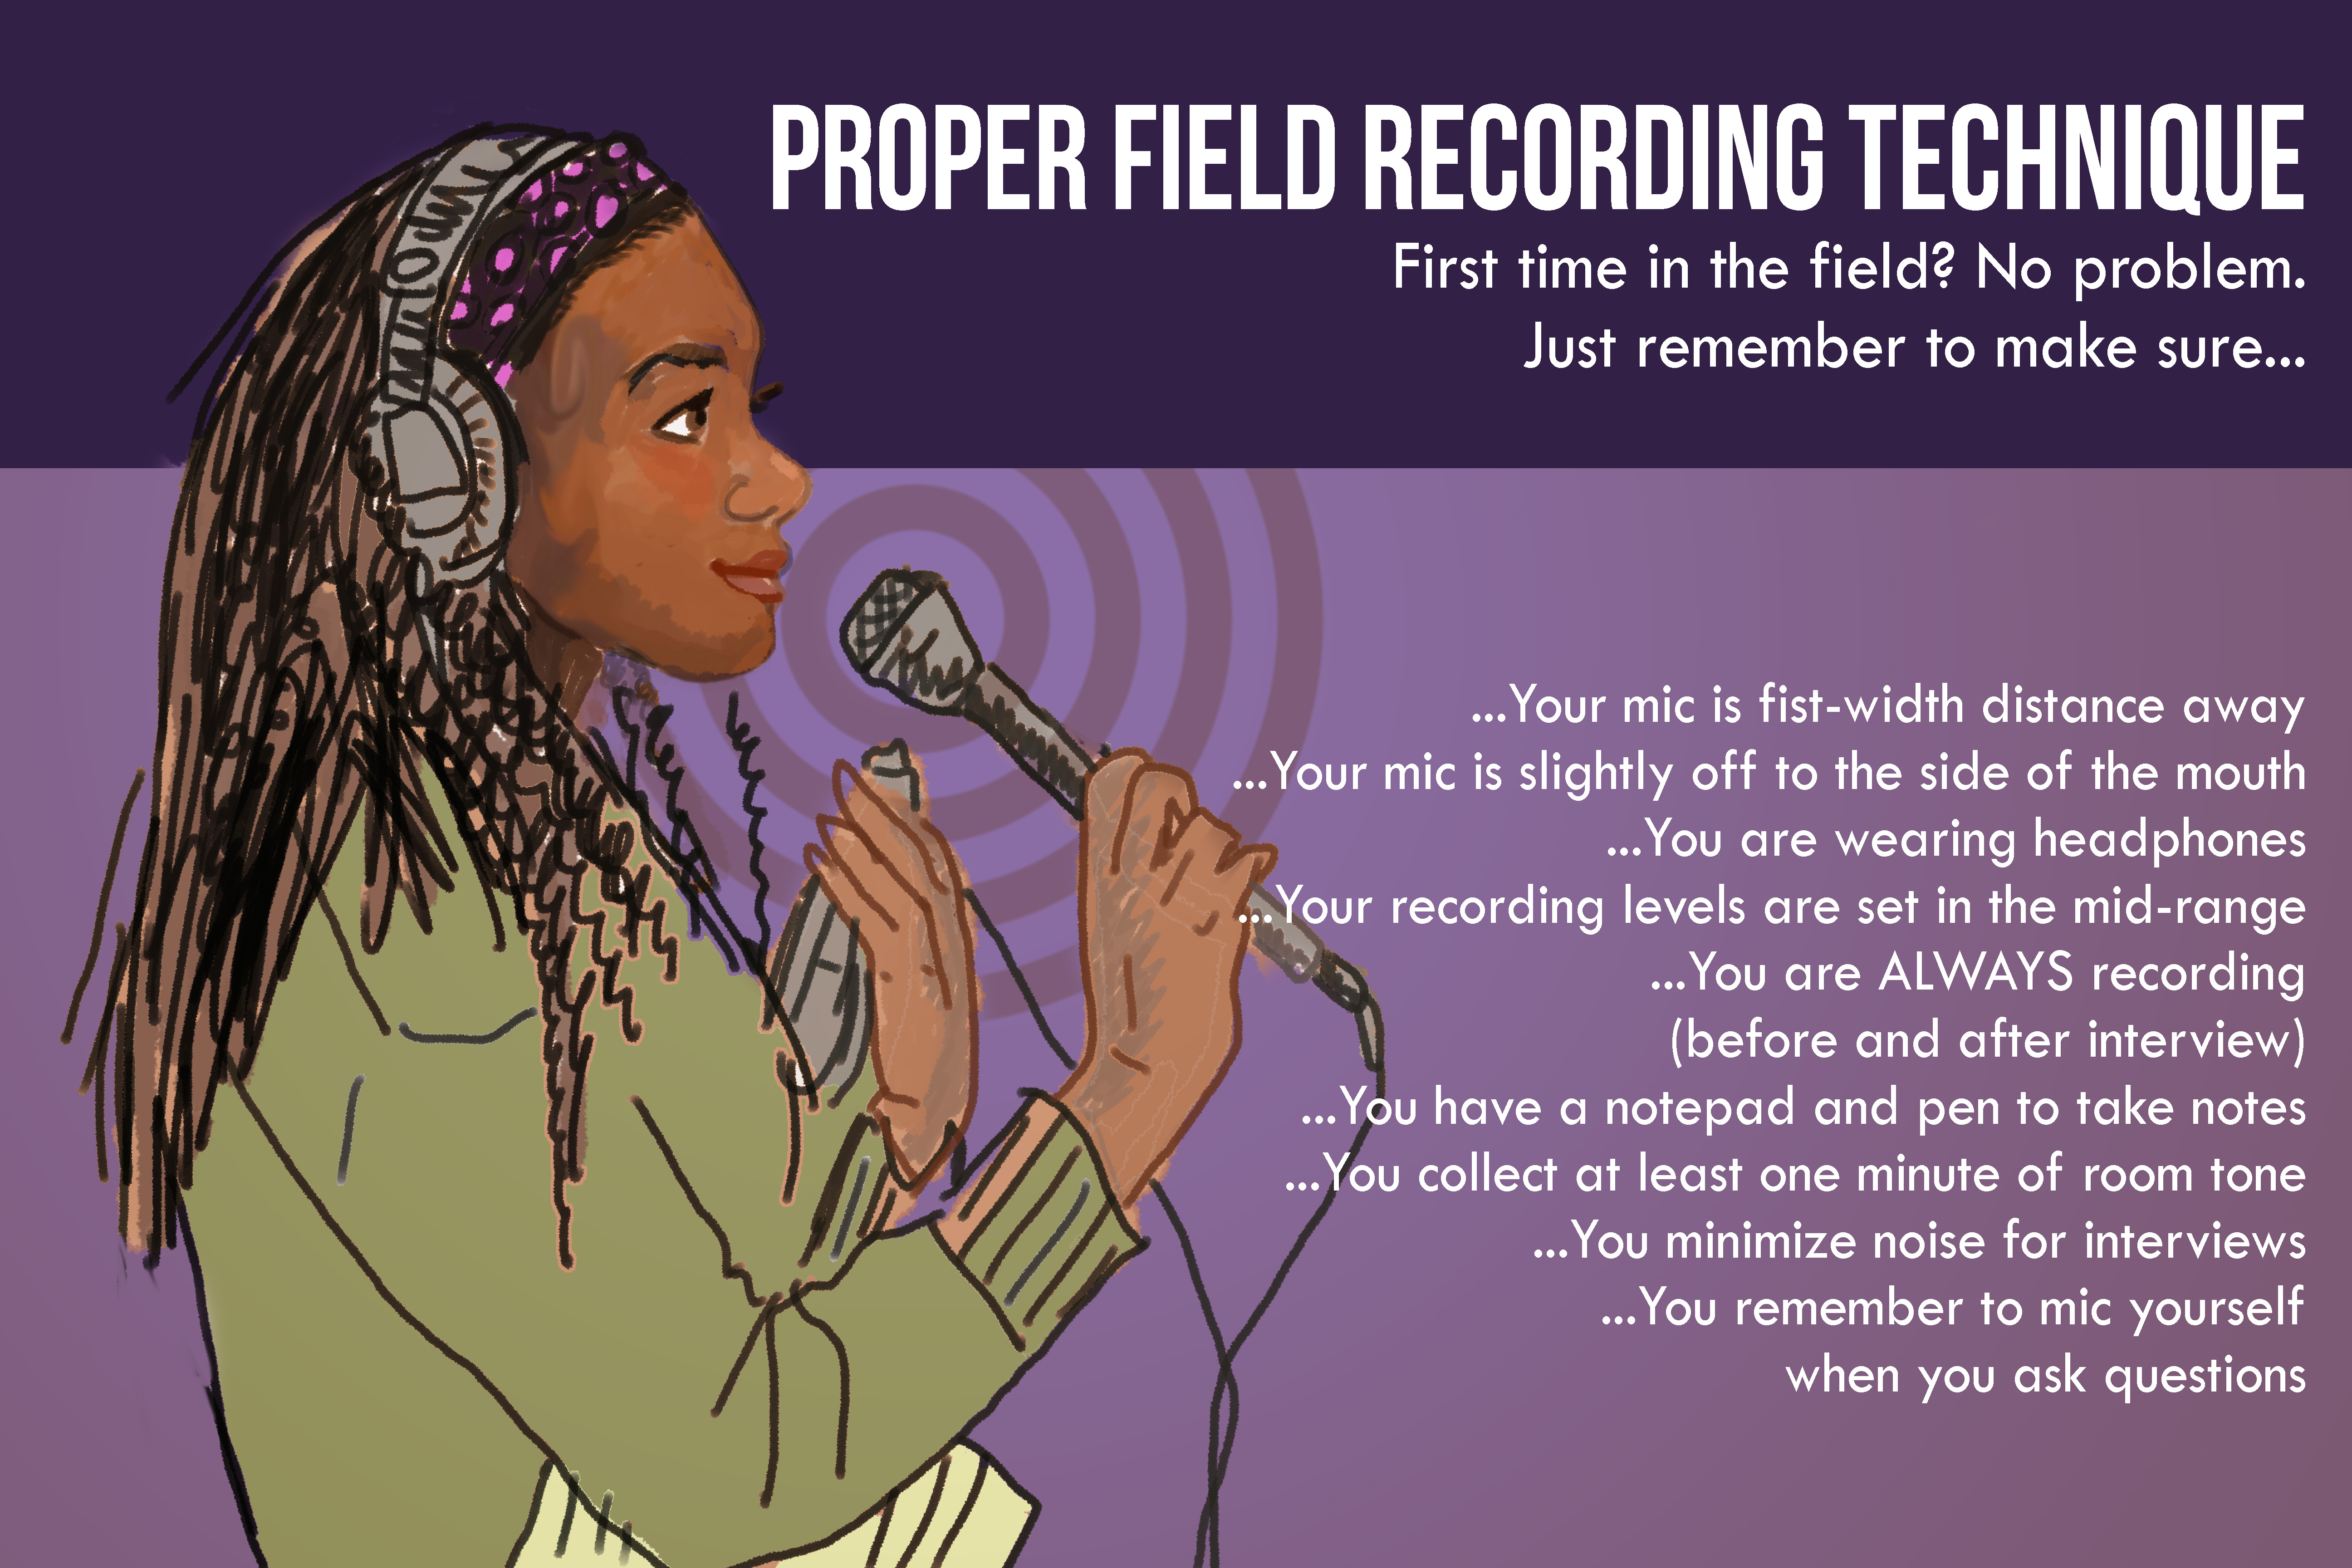 Field Recording Graphic Illustration